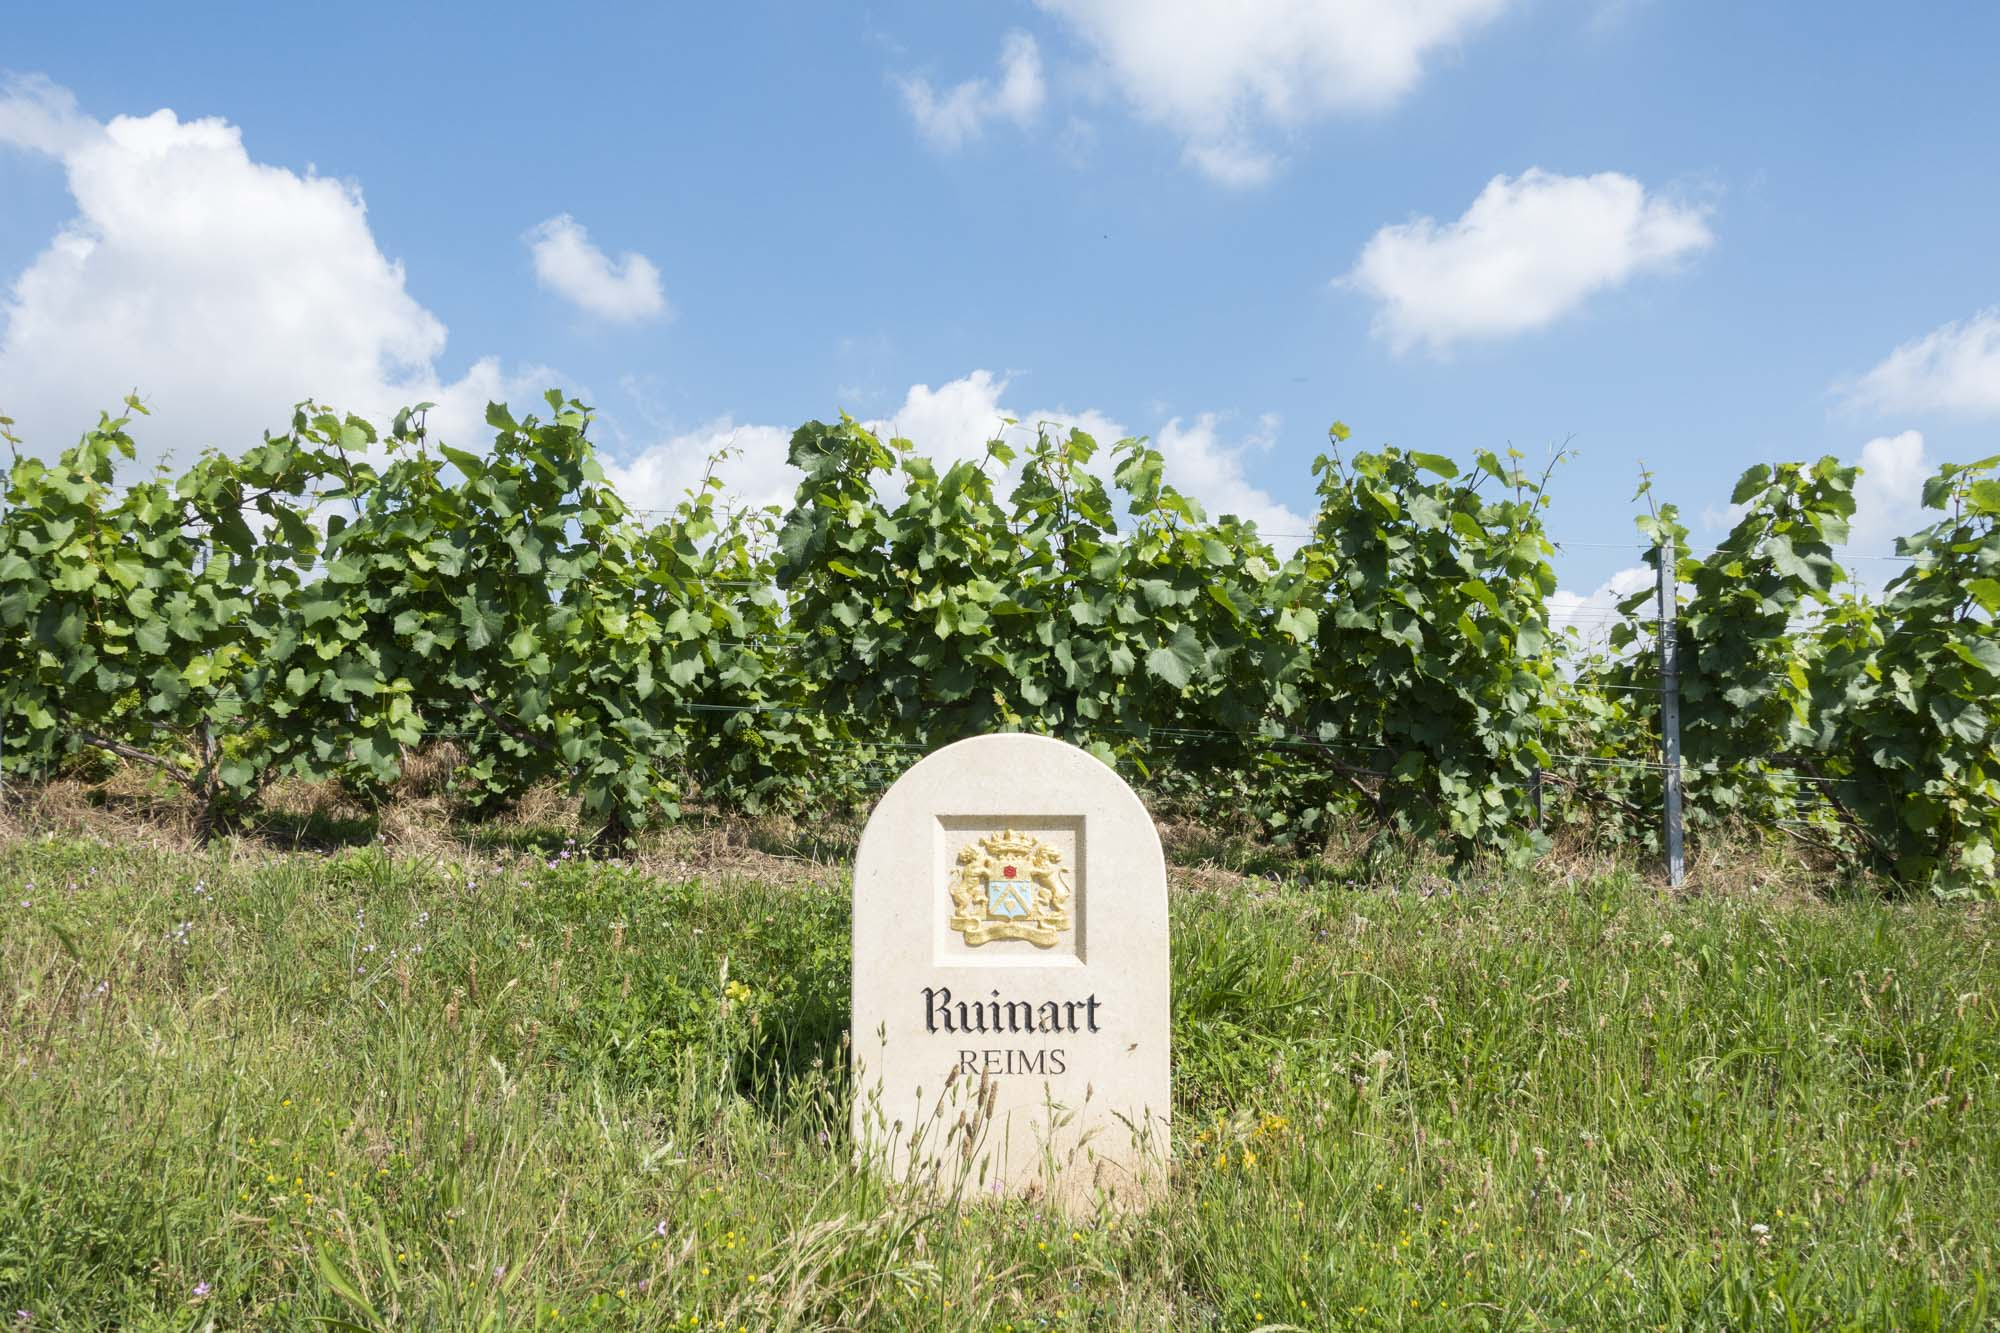 Stone with Ruinart coat of arms on it in the vineyards in Champagne near Reims